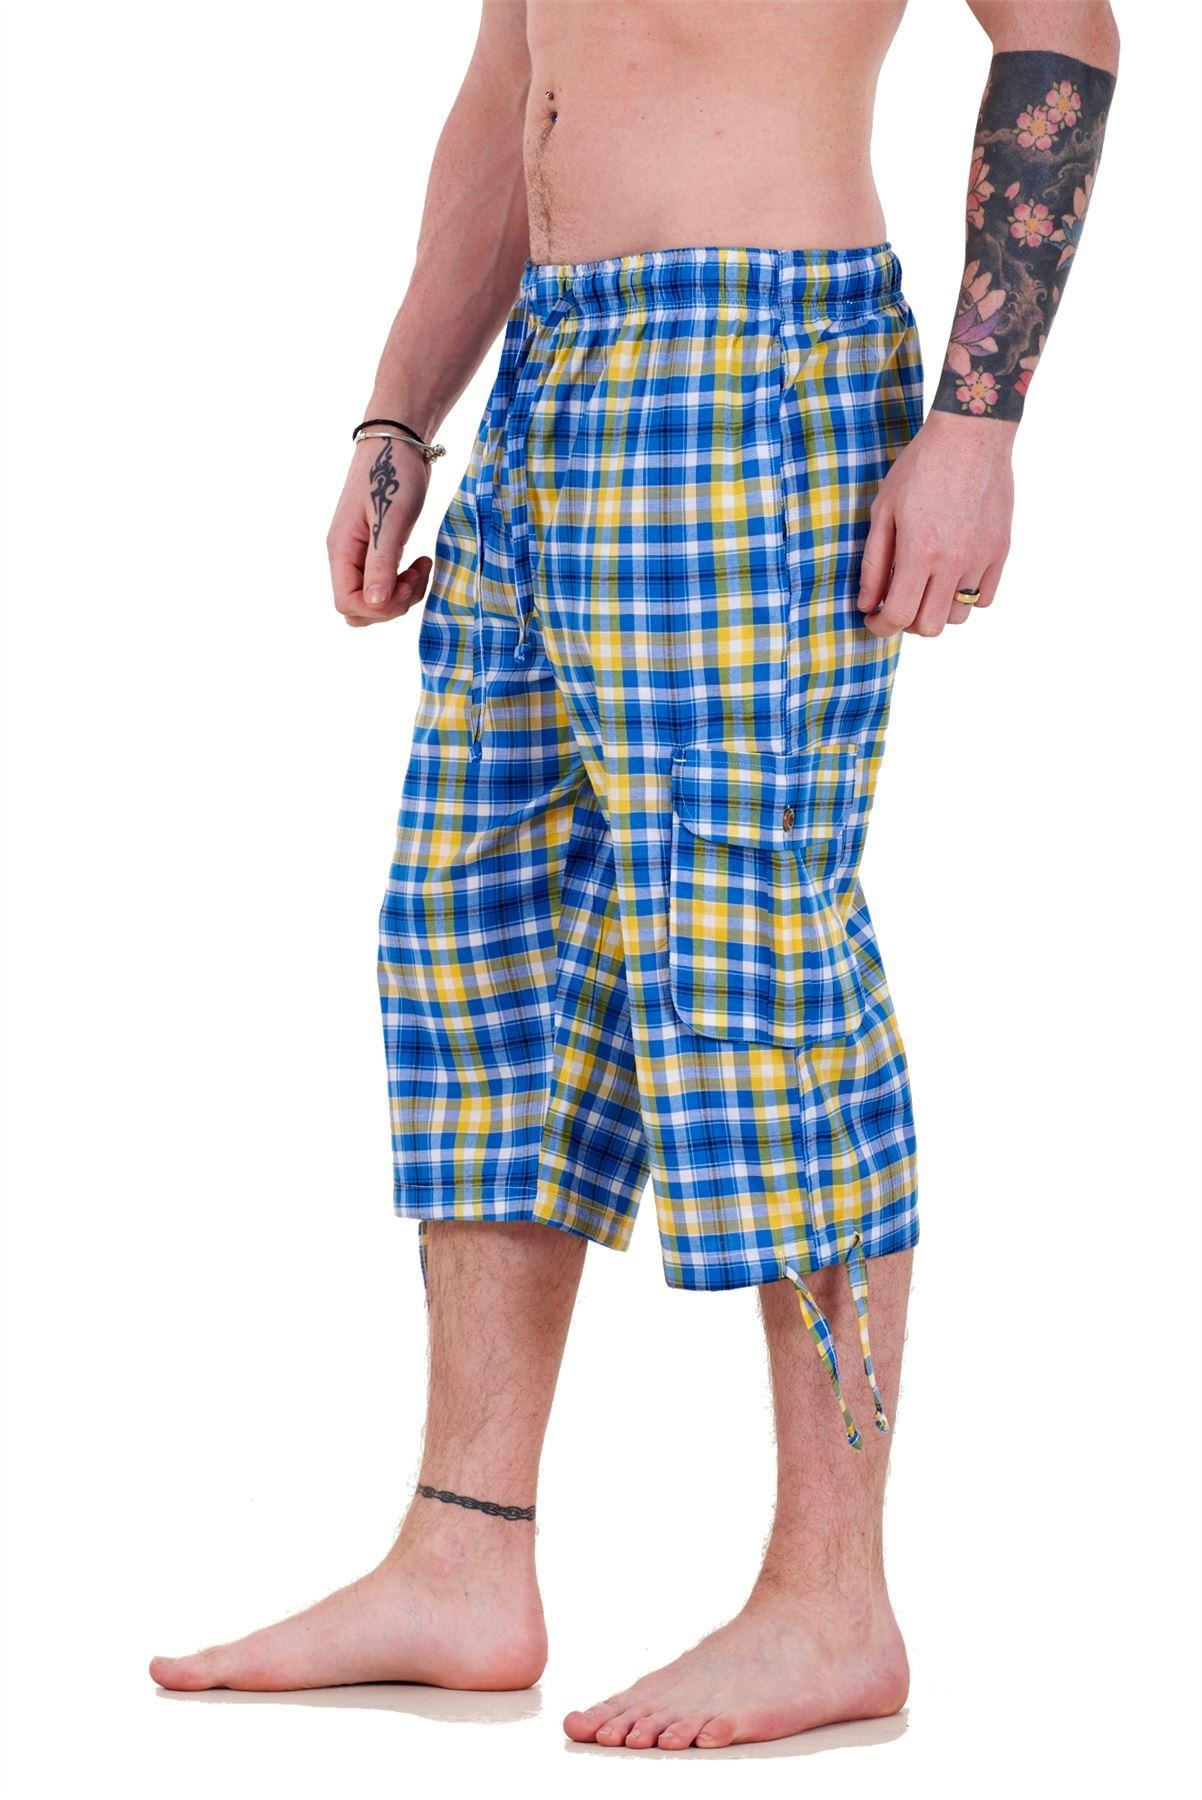 Mens-Check-Shorts-3-4-Length-by-Malay-Apparel-Cotton-Blend-Lounge-Casual-Wear thumbnail 14